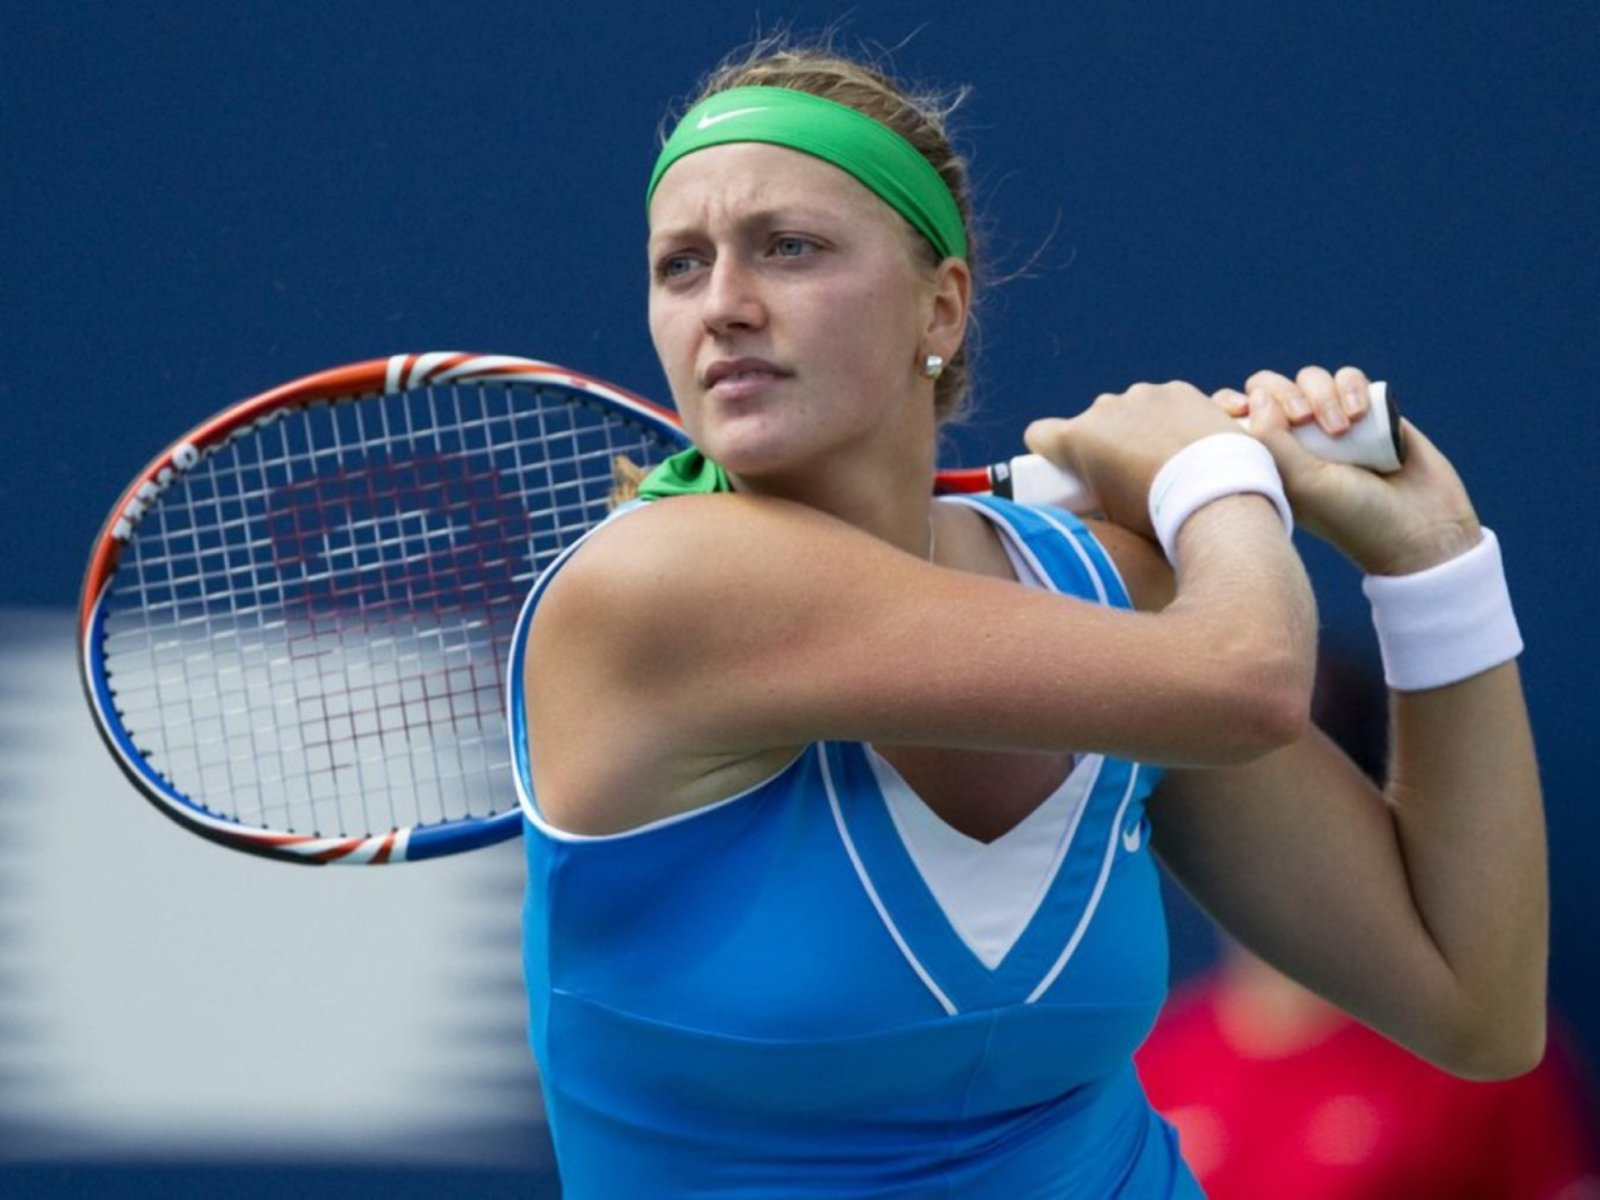 Czech player Petra Kvitova (ranked no 4) won the women's singles after defeating her compatriot K. Pliskova (ranked no 22) with scores of 7-6, 7-6.